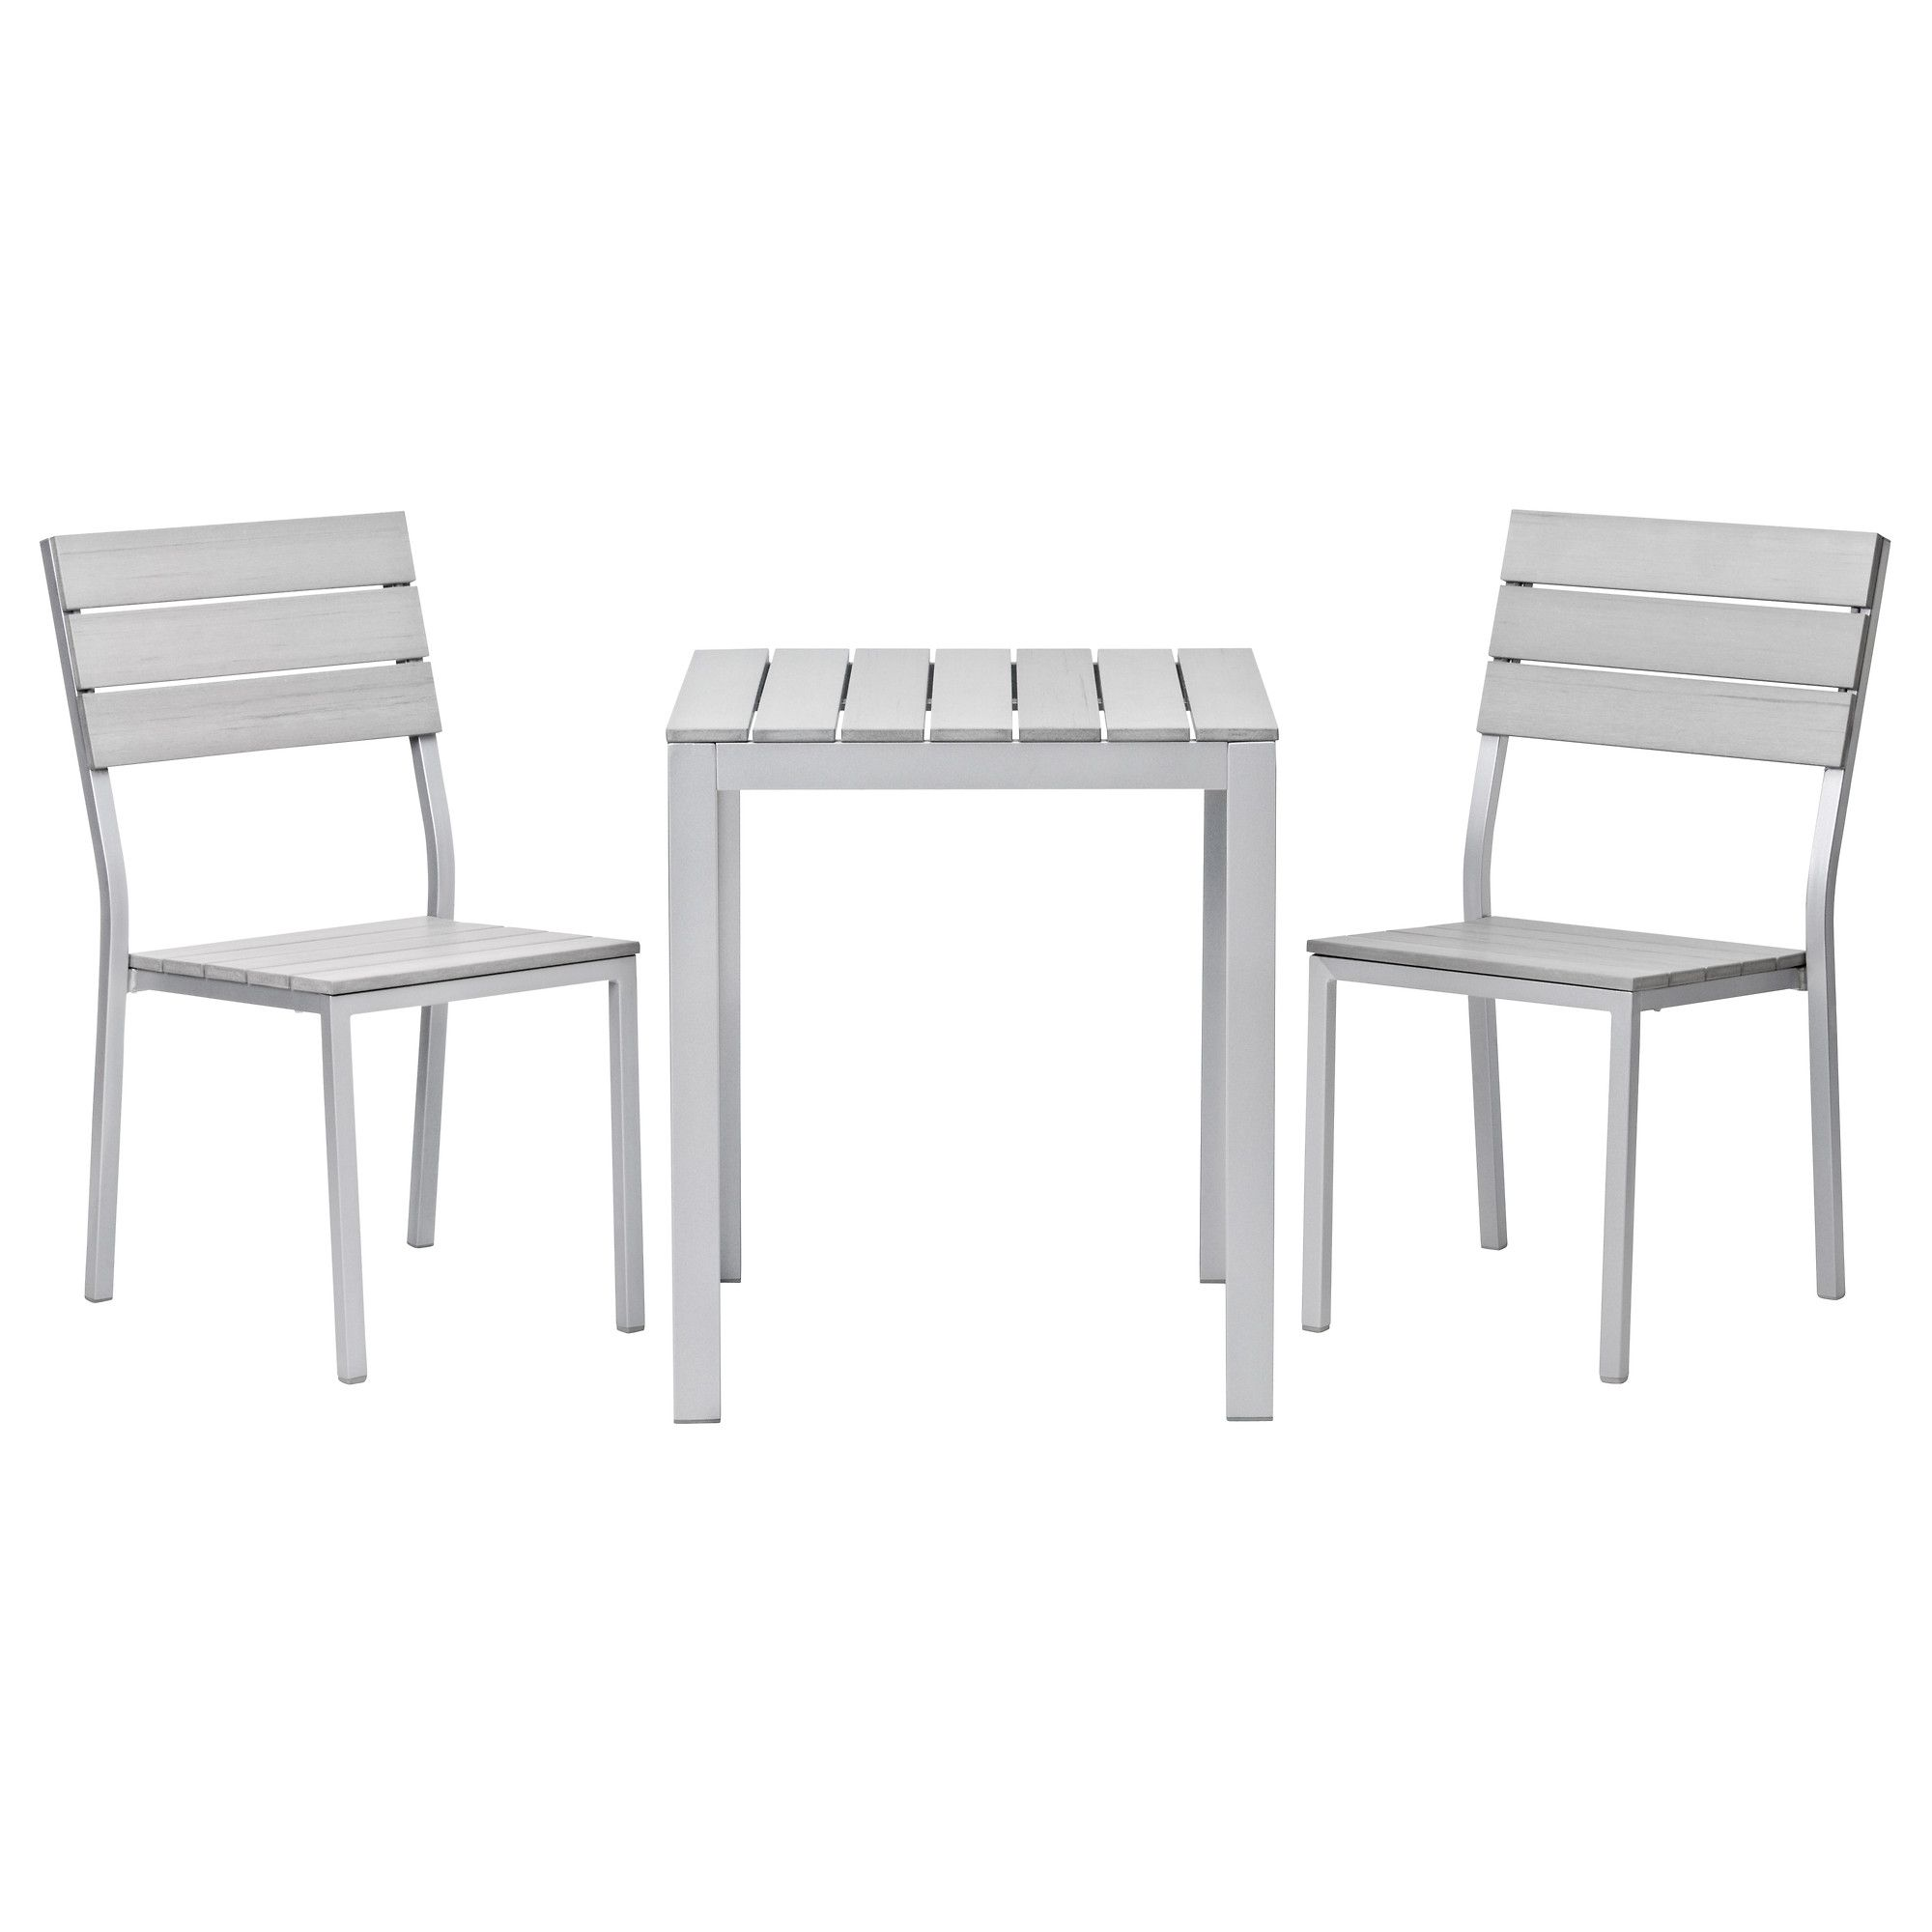 Falster bistro set for the balcony